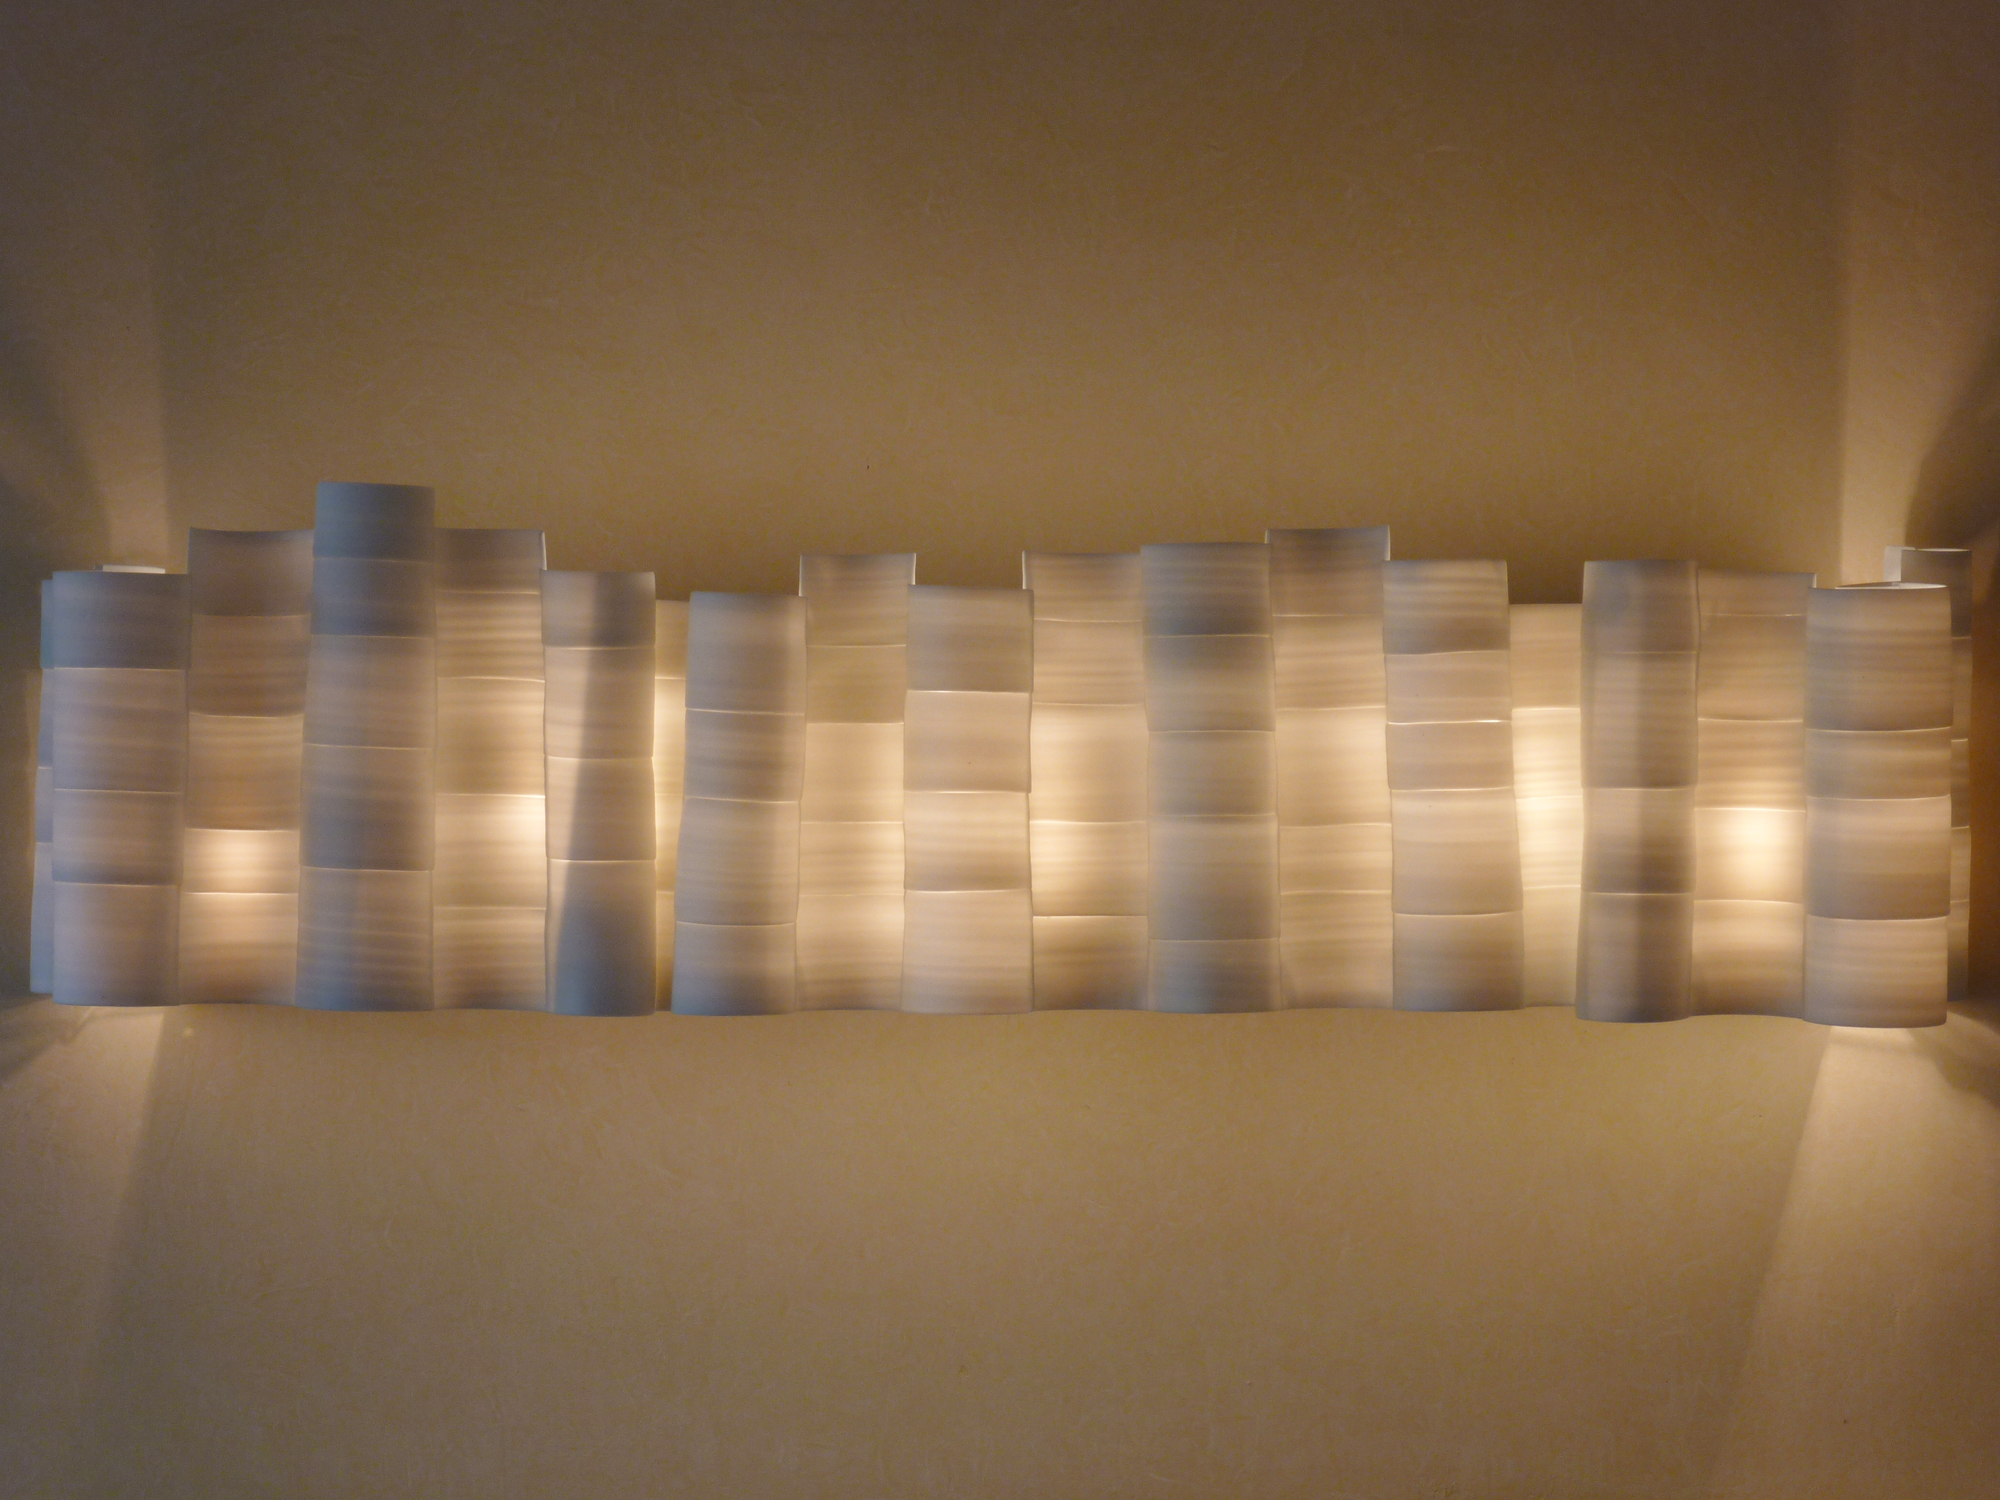 3. Wall light